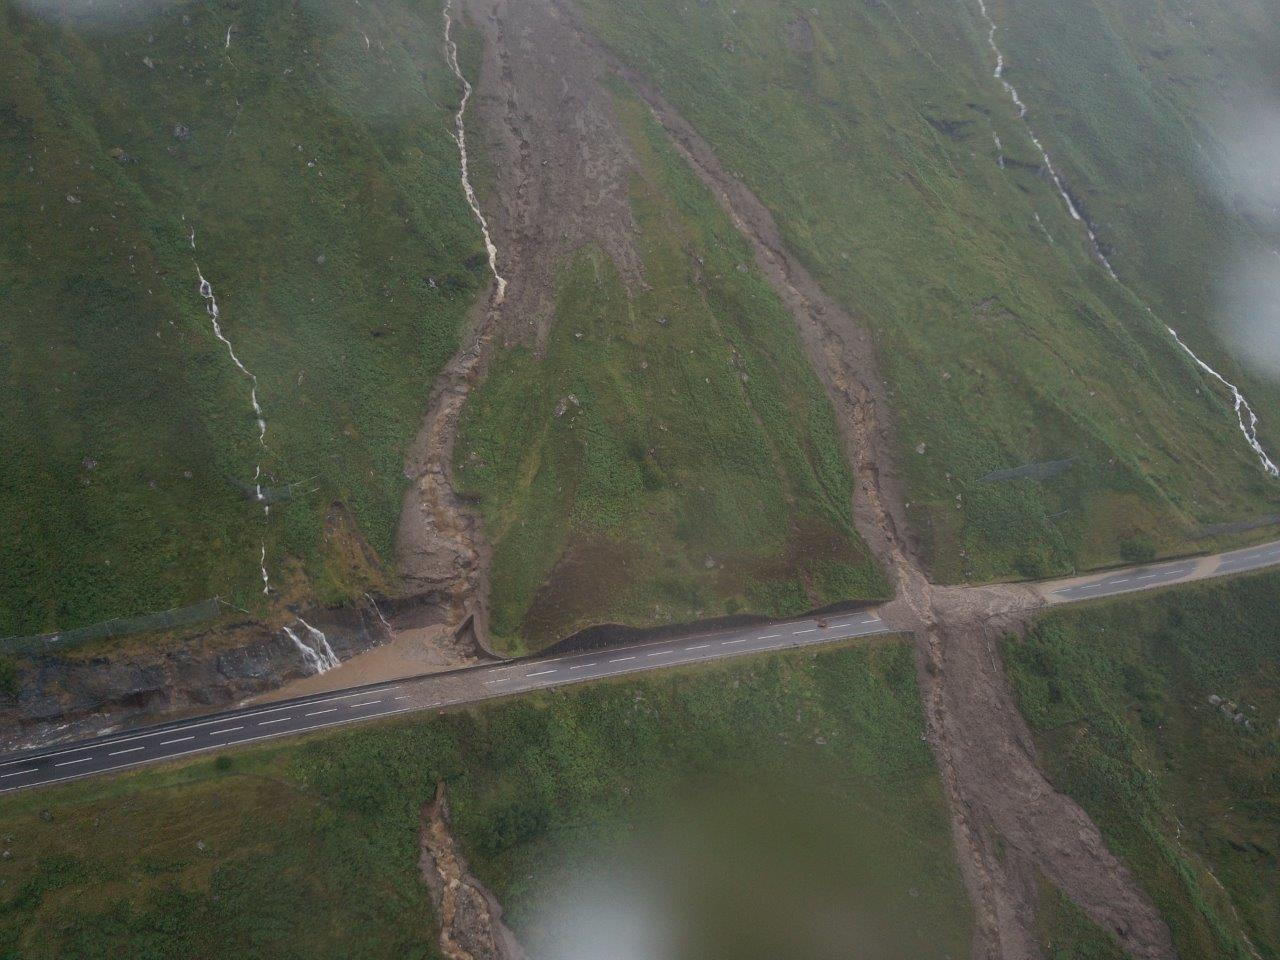 The landslides pictured from an aerial view